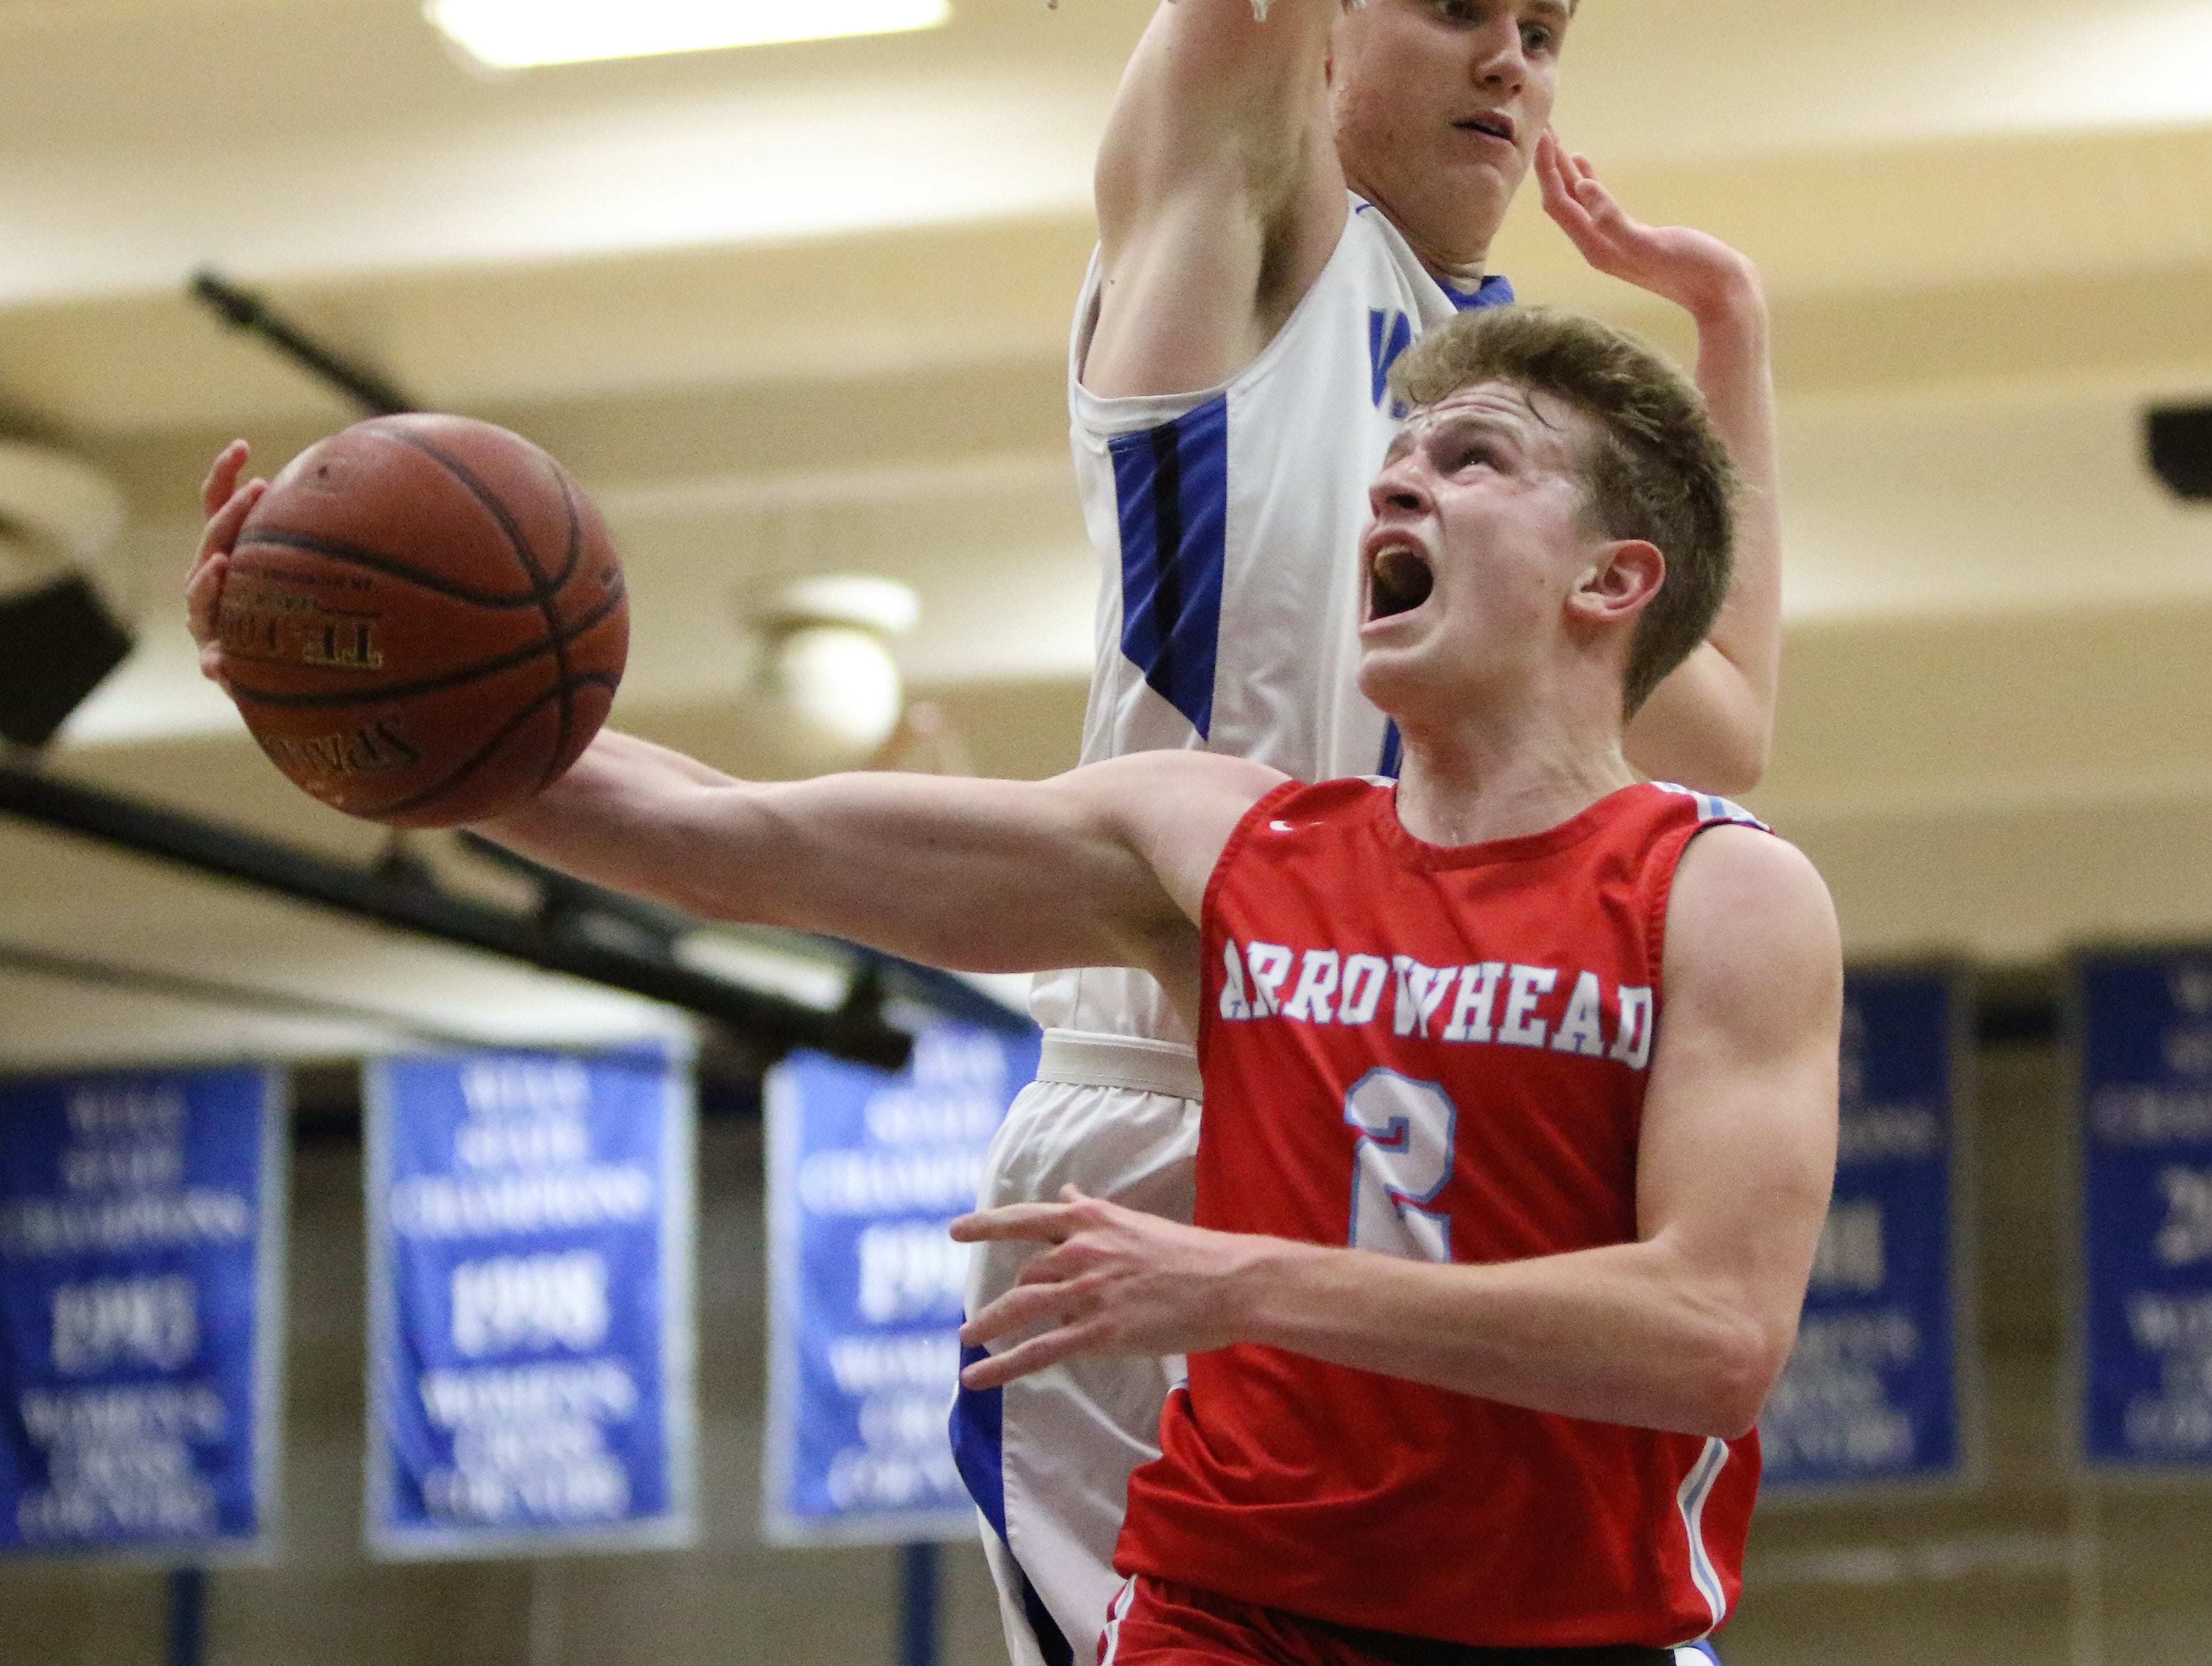 Arrowhead guard Tyler Gouin goes up for a reverse layup as Waukesha West forward David Skogman attempts to block the shot on Feb. 1, 2019.